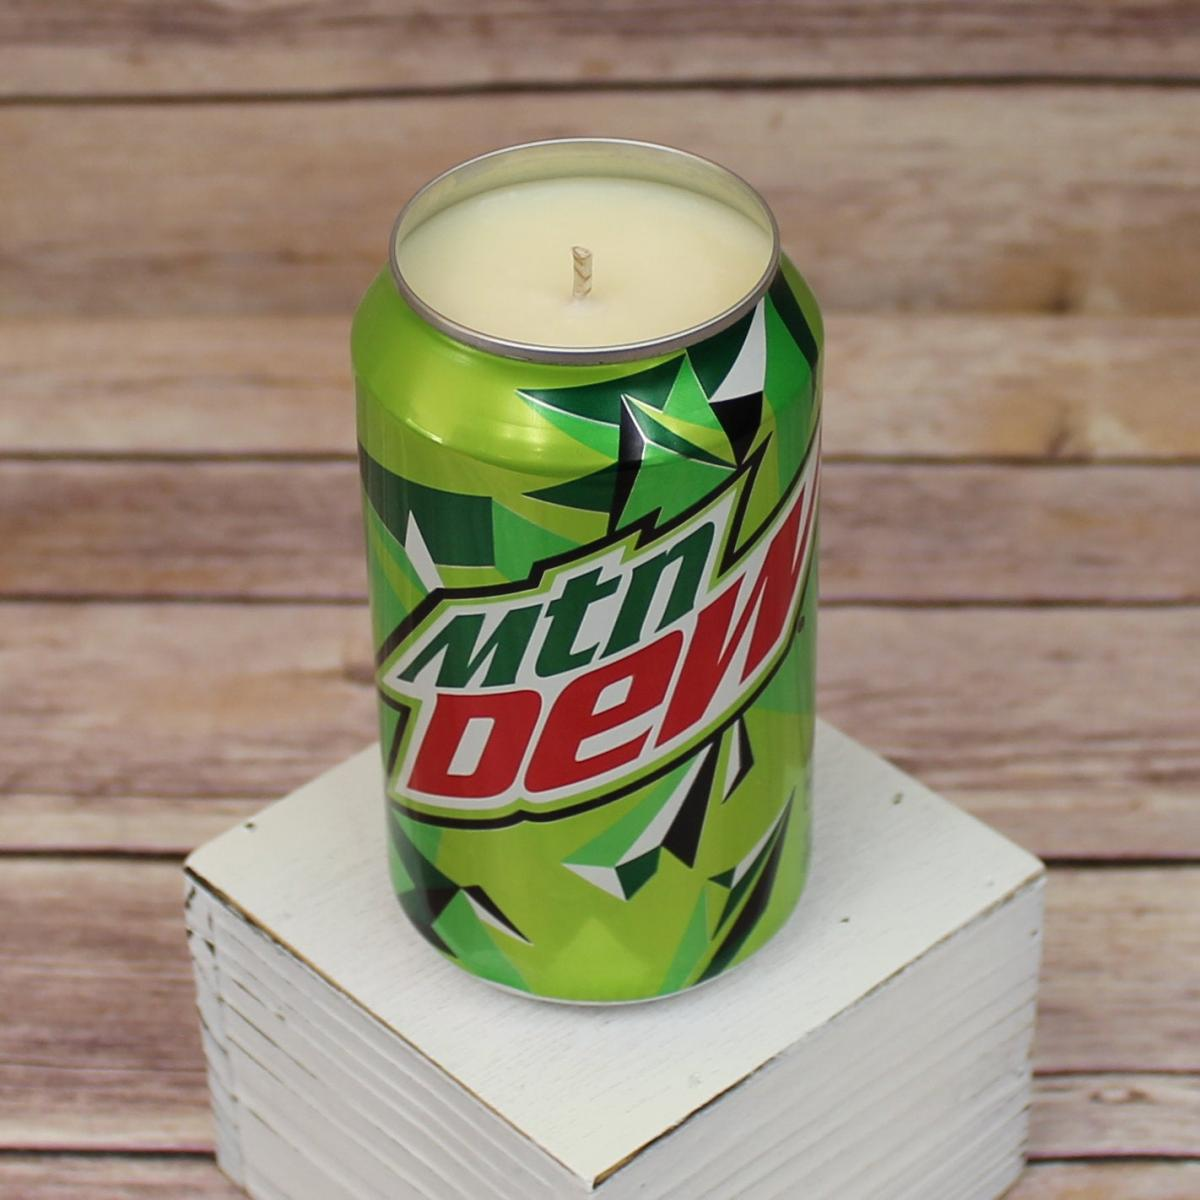 Mountain Dew Candle - Candle That Smells Like Mountain Dew